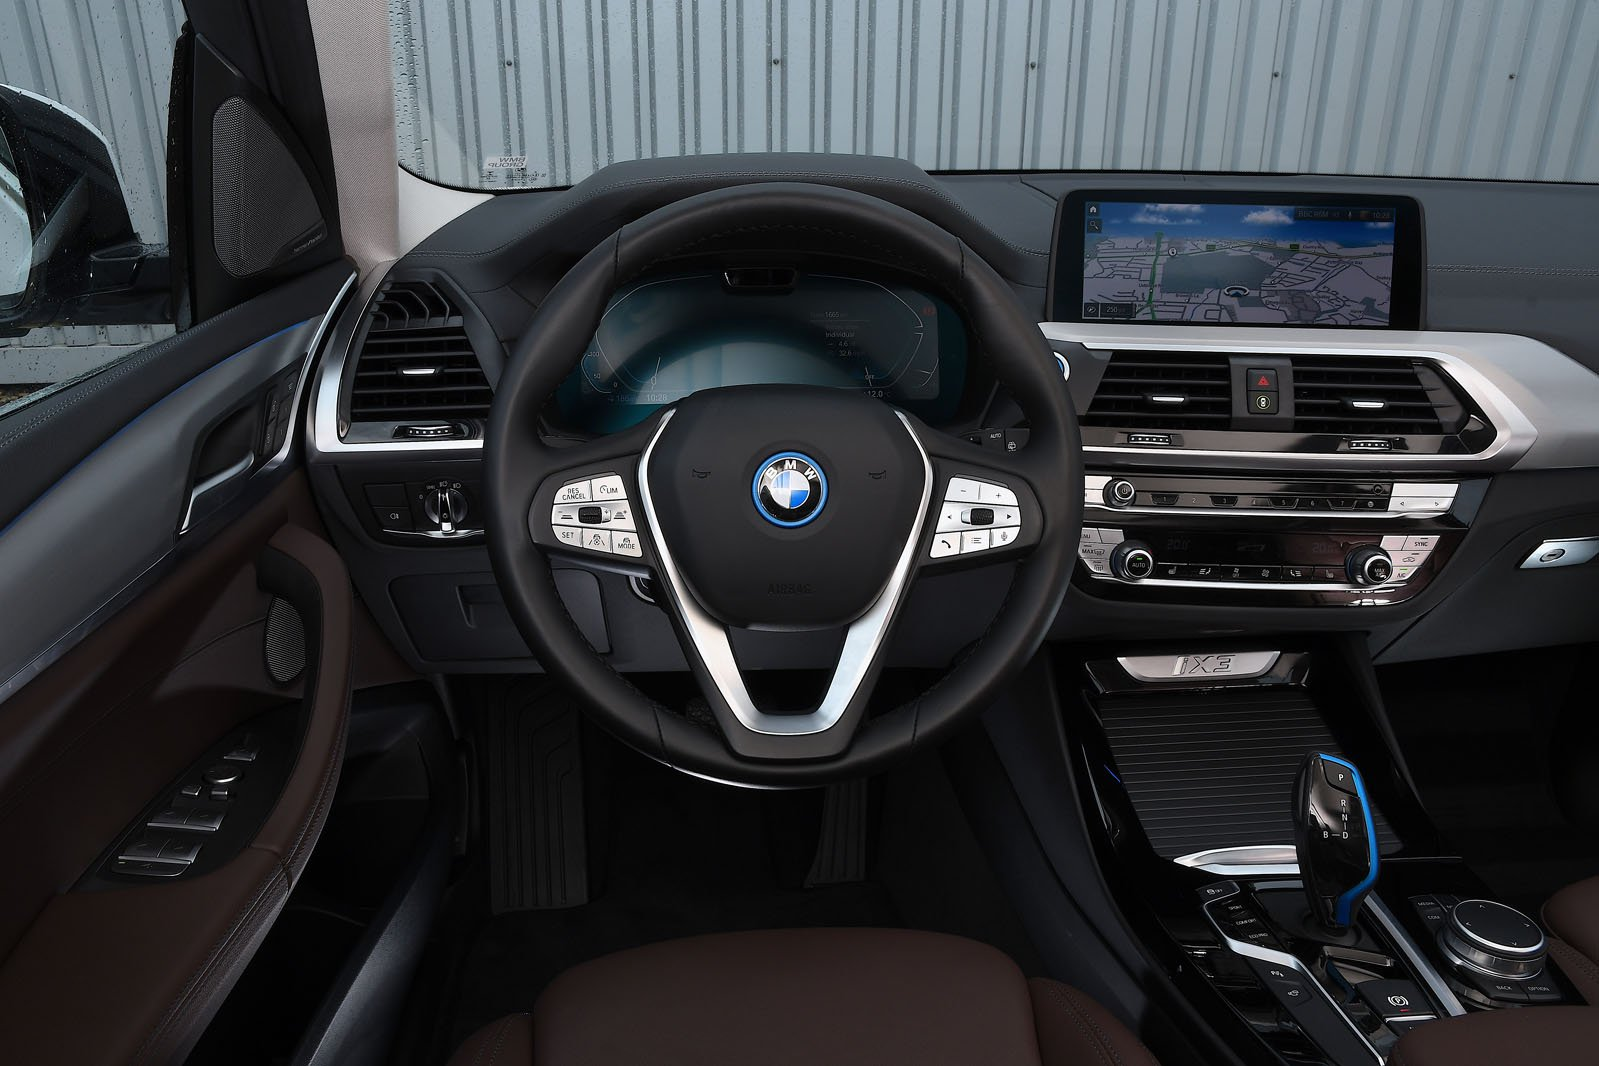 BMW iX3 2020 Dashboard